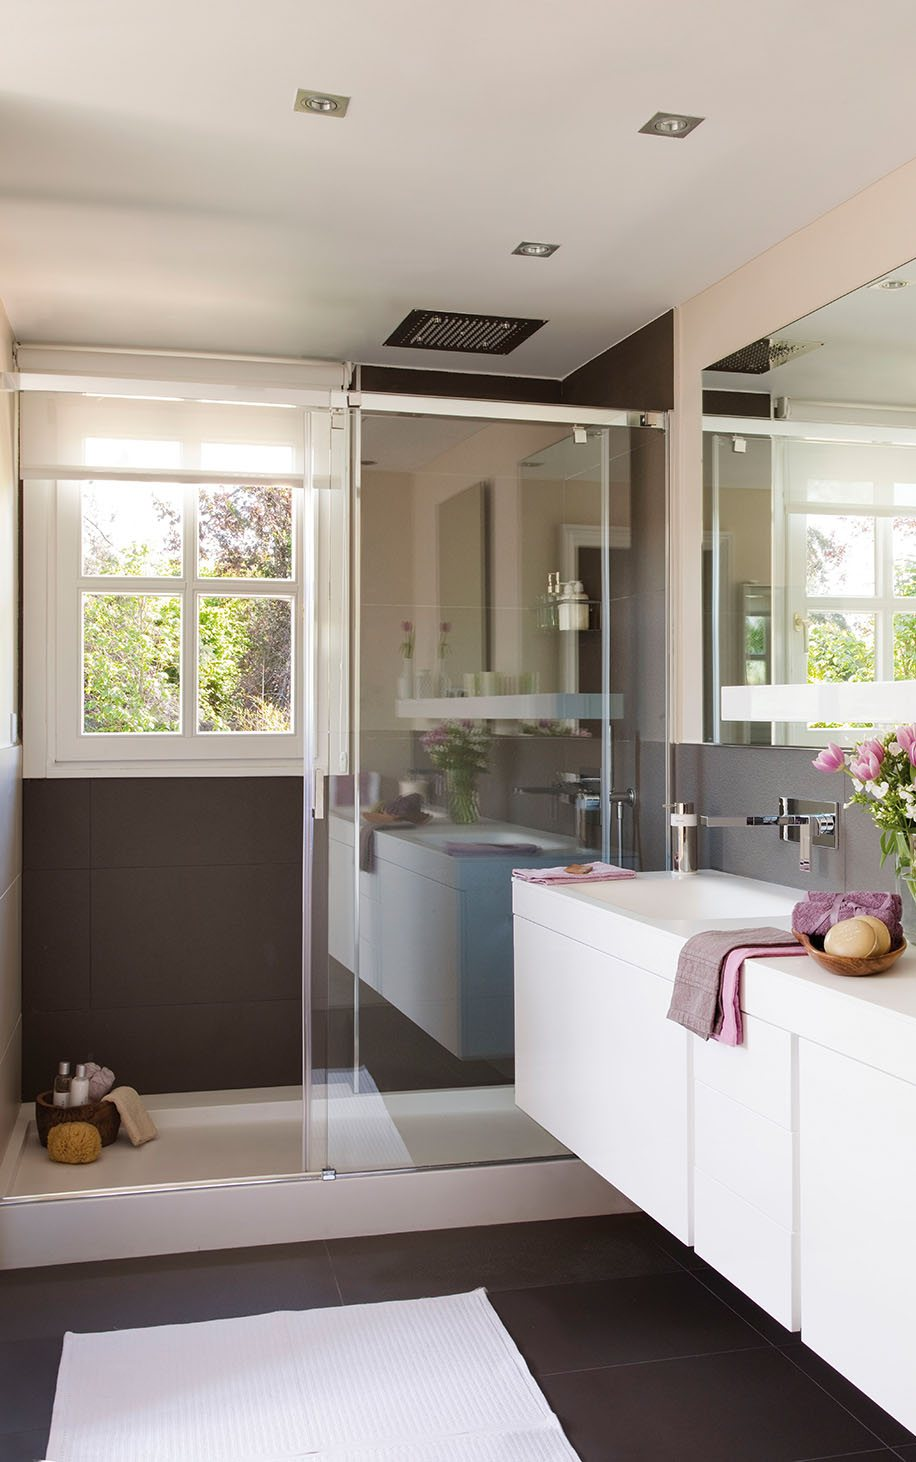 Small Bathroom Remodeling Guide (30 Pics) - Decoholic on Small Bathroom Remodel  id=97431